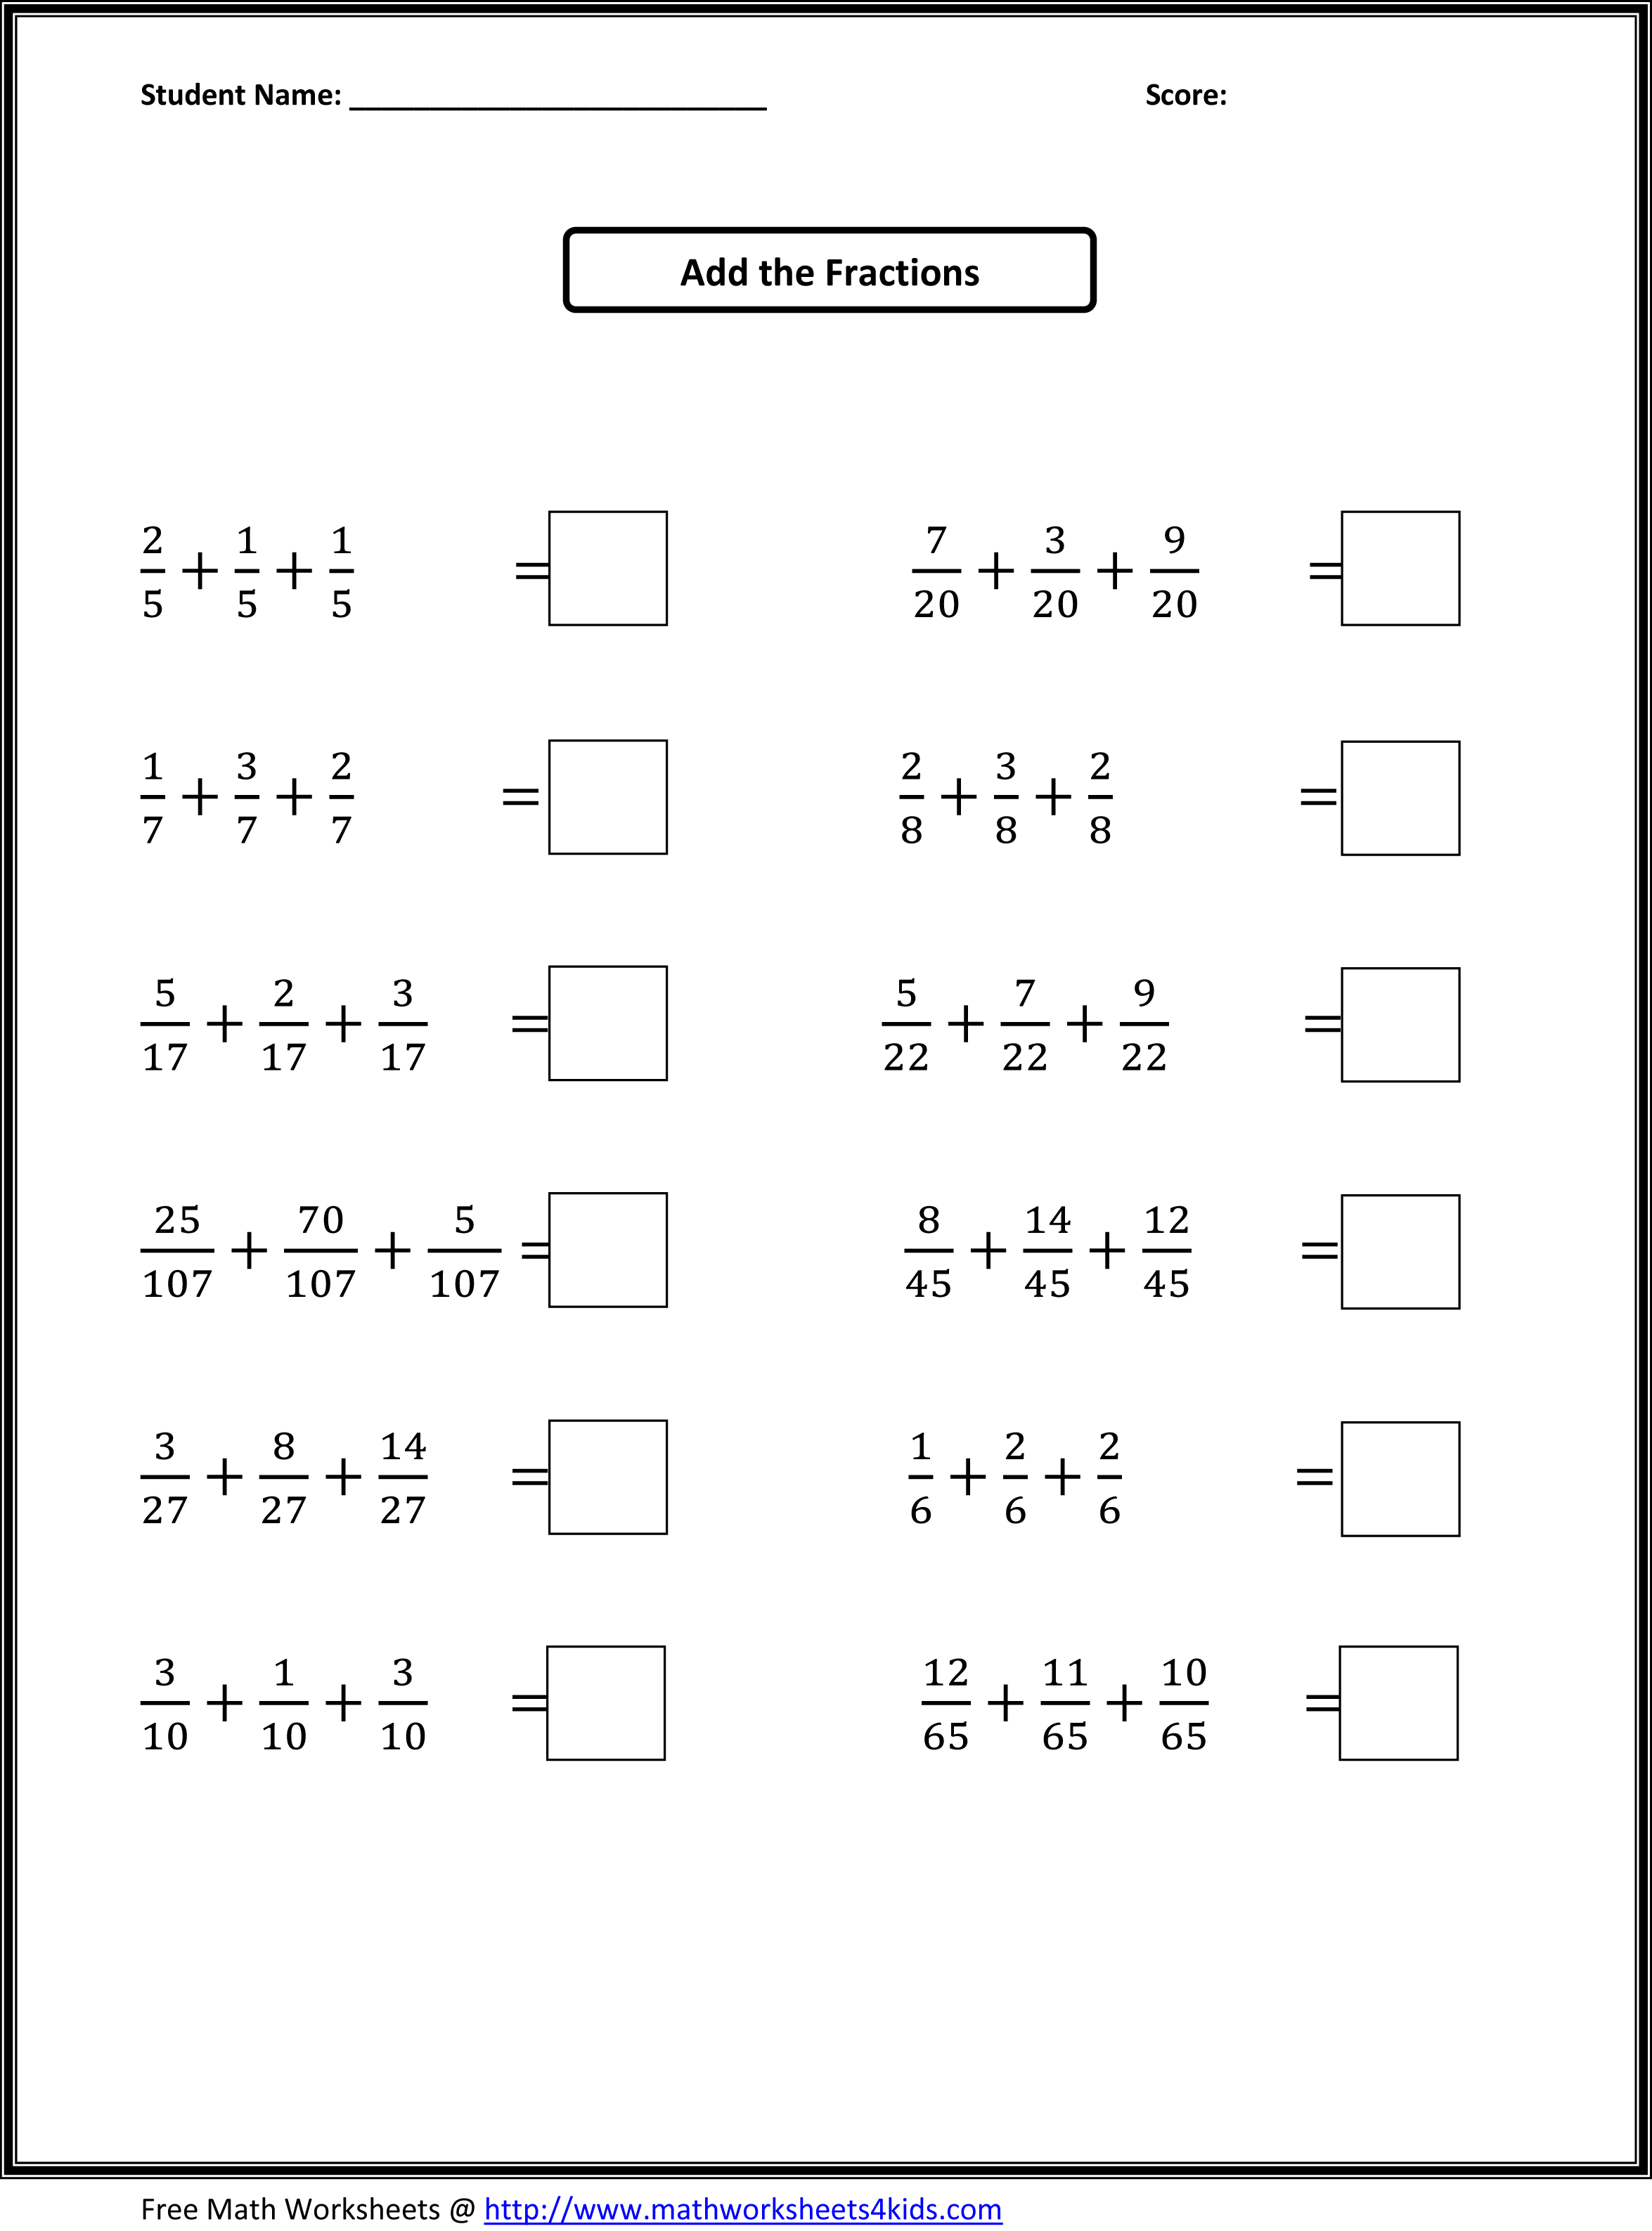 Add Fraction Worksheet addition math worksheets math word – Add Fractions Worksheet